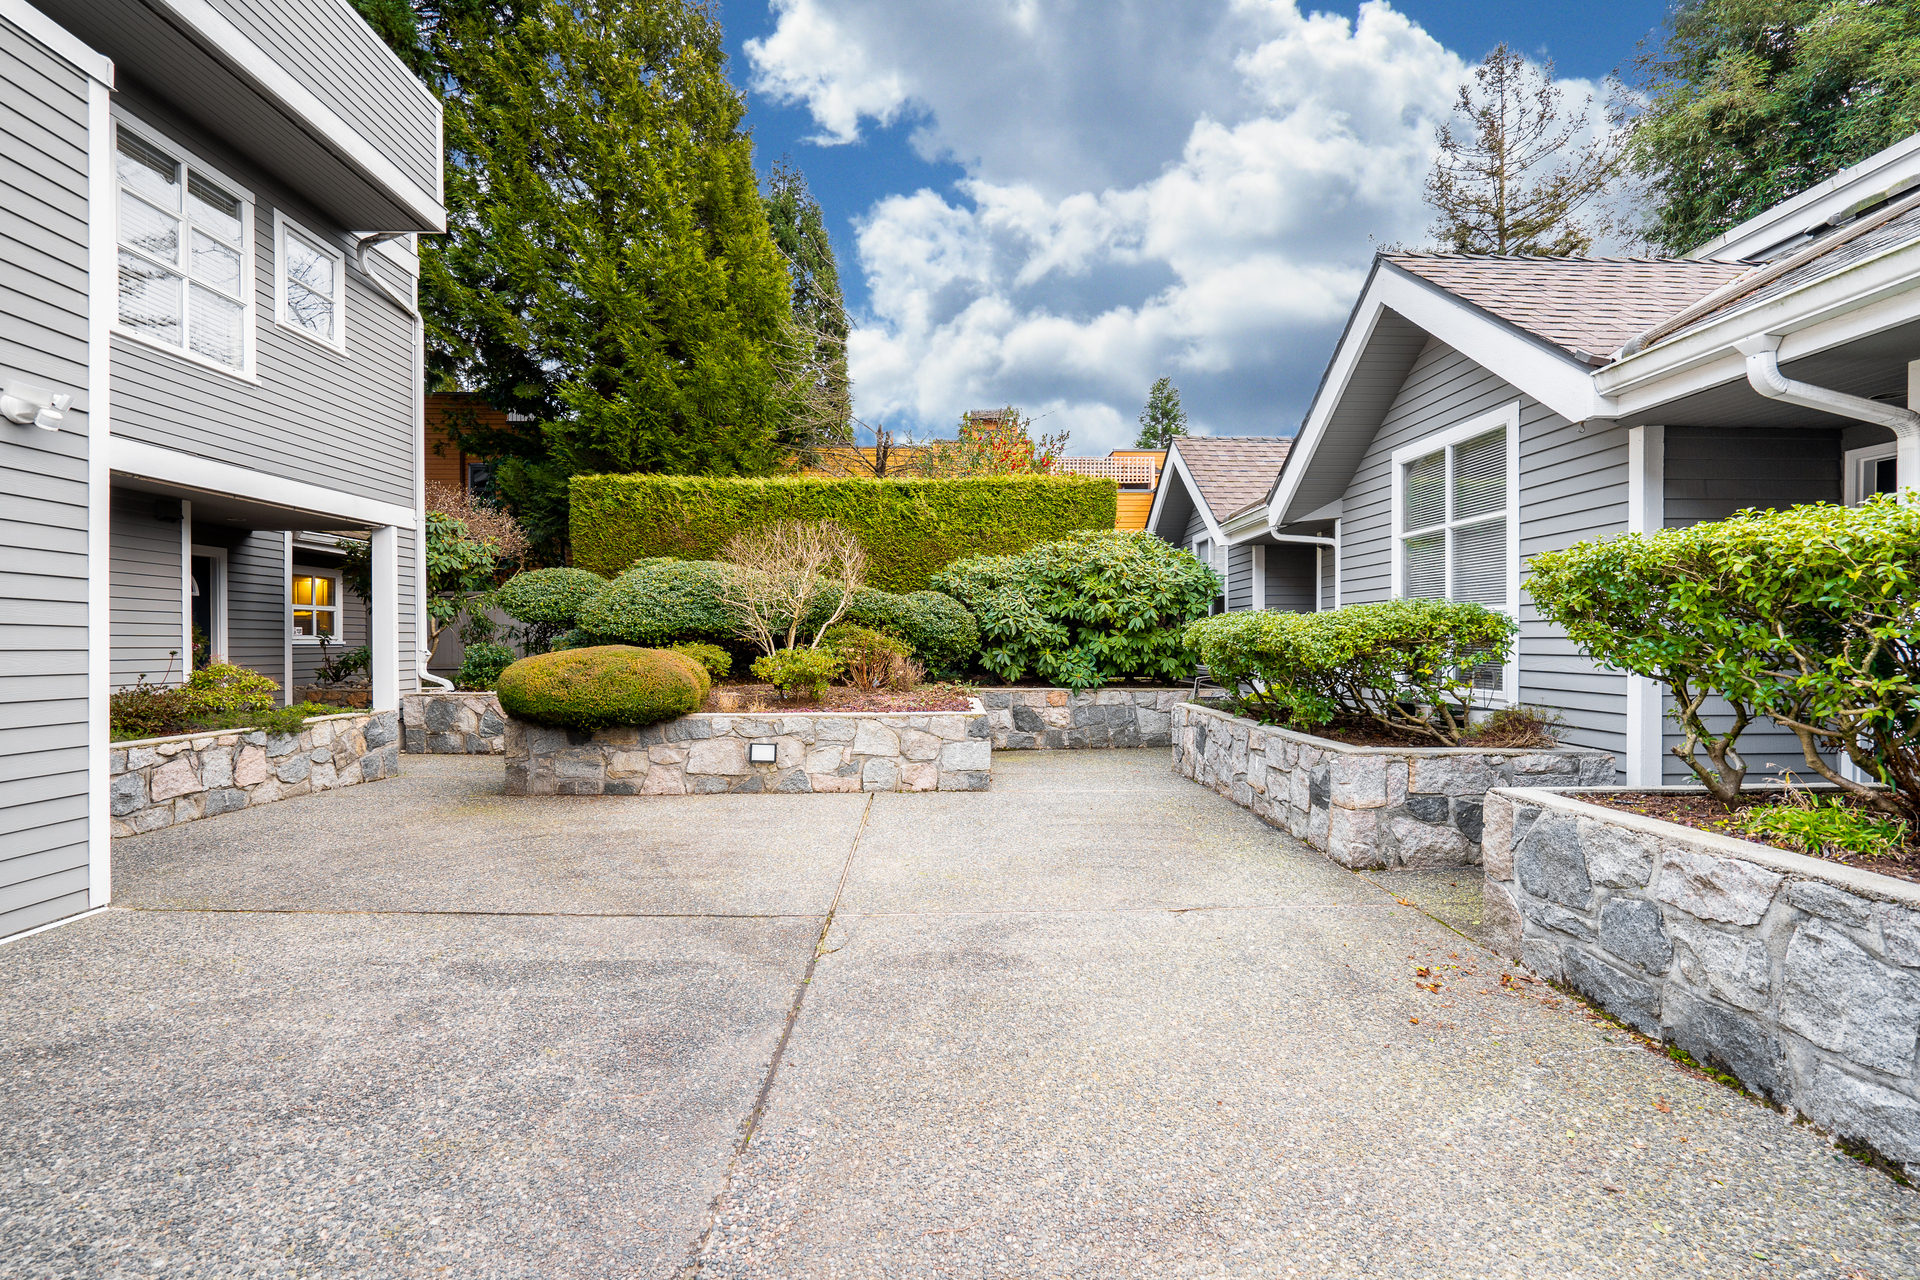 104 - 222 West 4th Street, Lower Lonsdale, North Vancouver 3